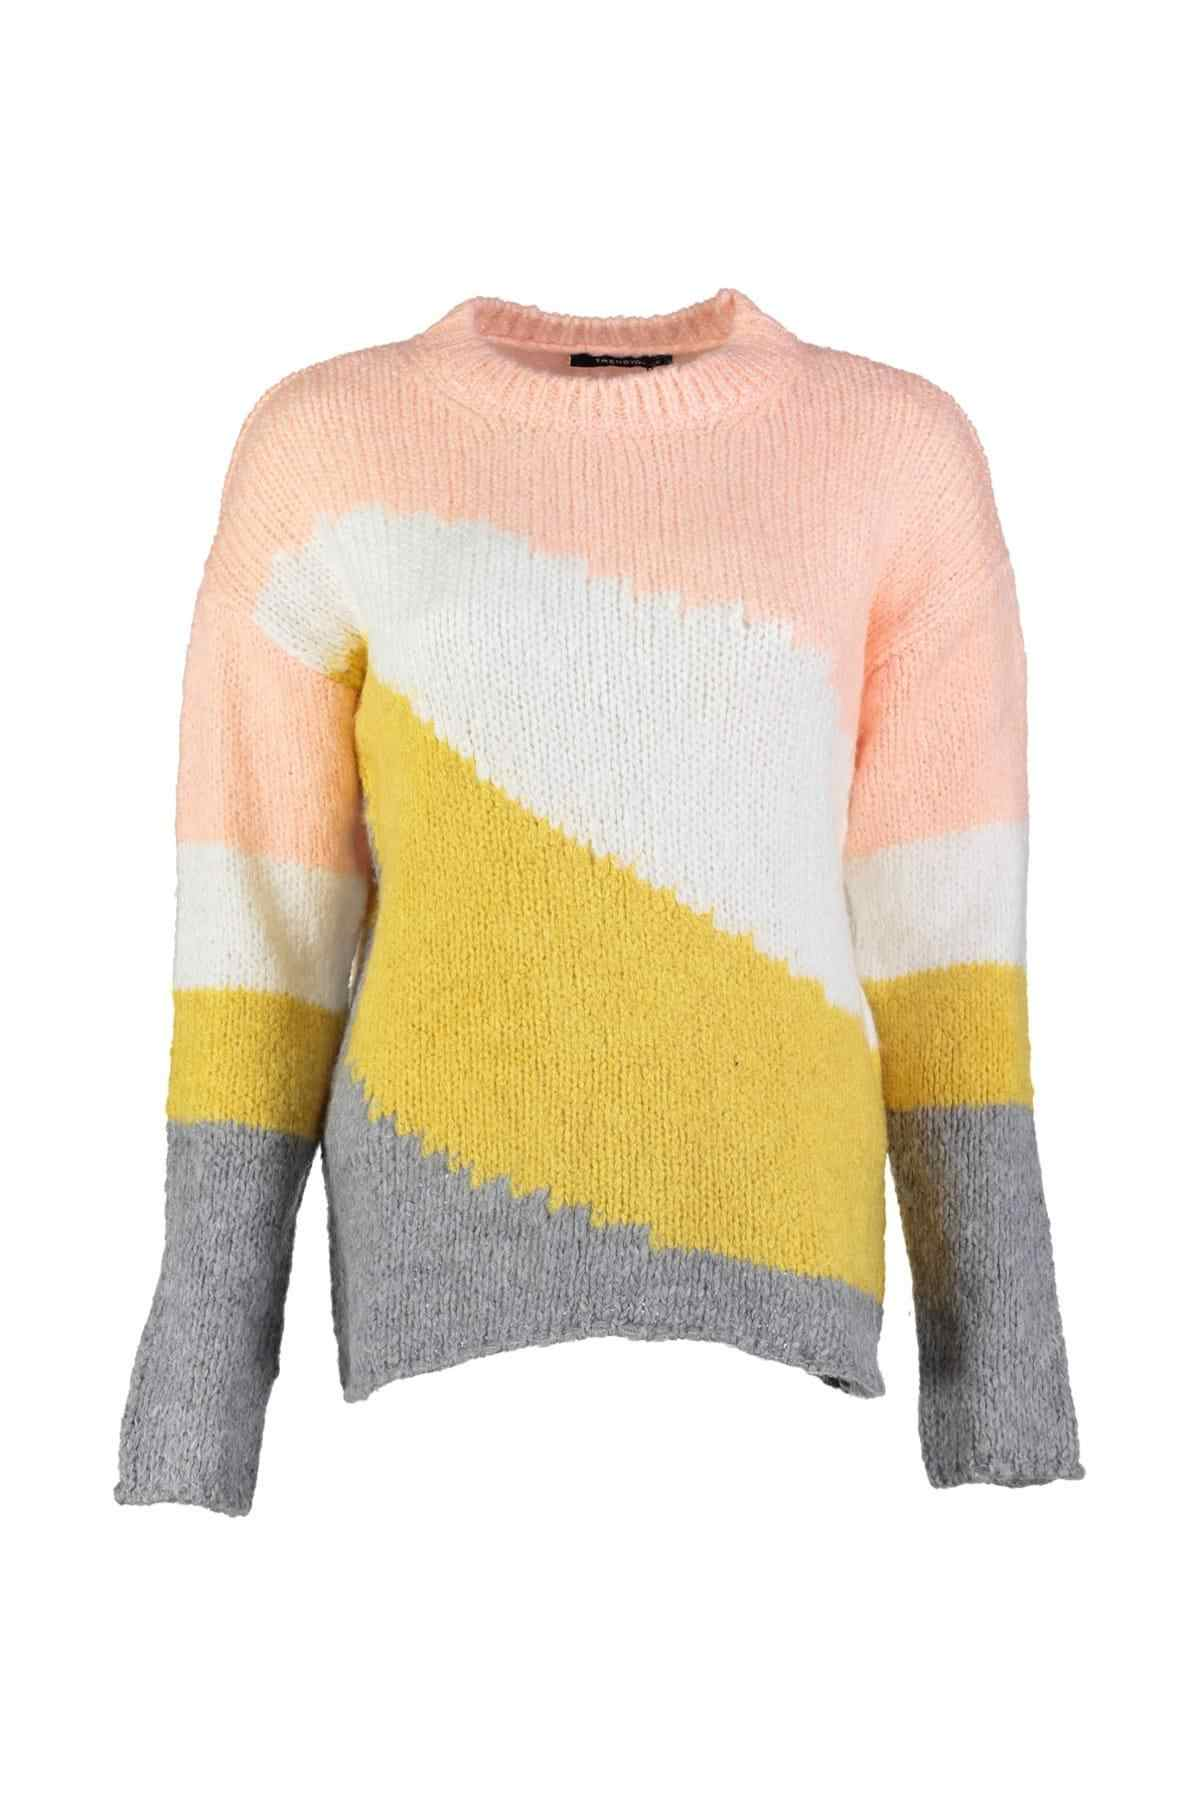 Trendyol Gray Colorblock Sweater Sweater TWOAW20ZA0032